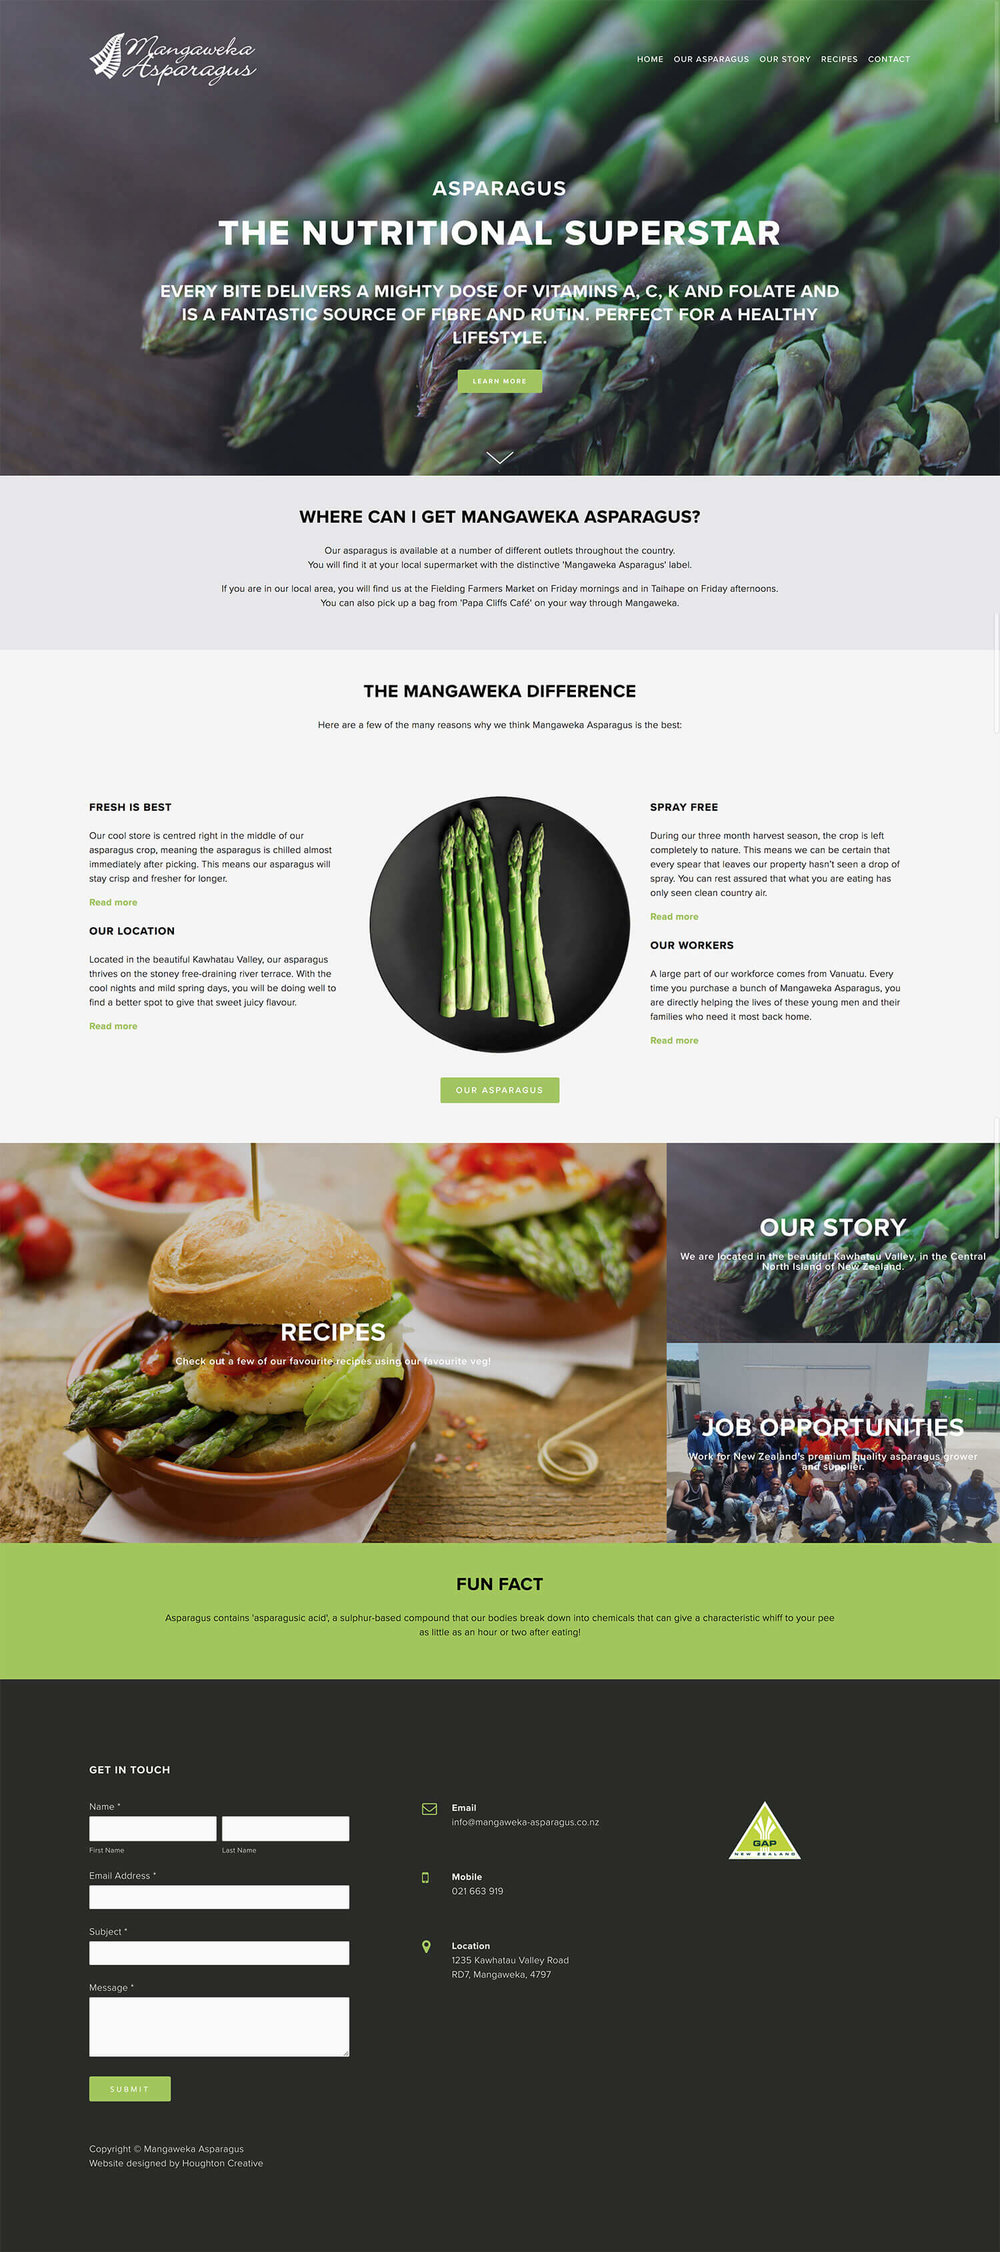 Mangaweka Asparagus website home page